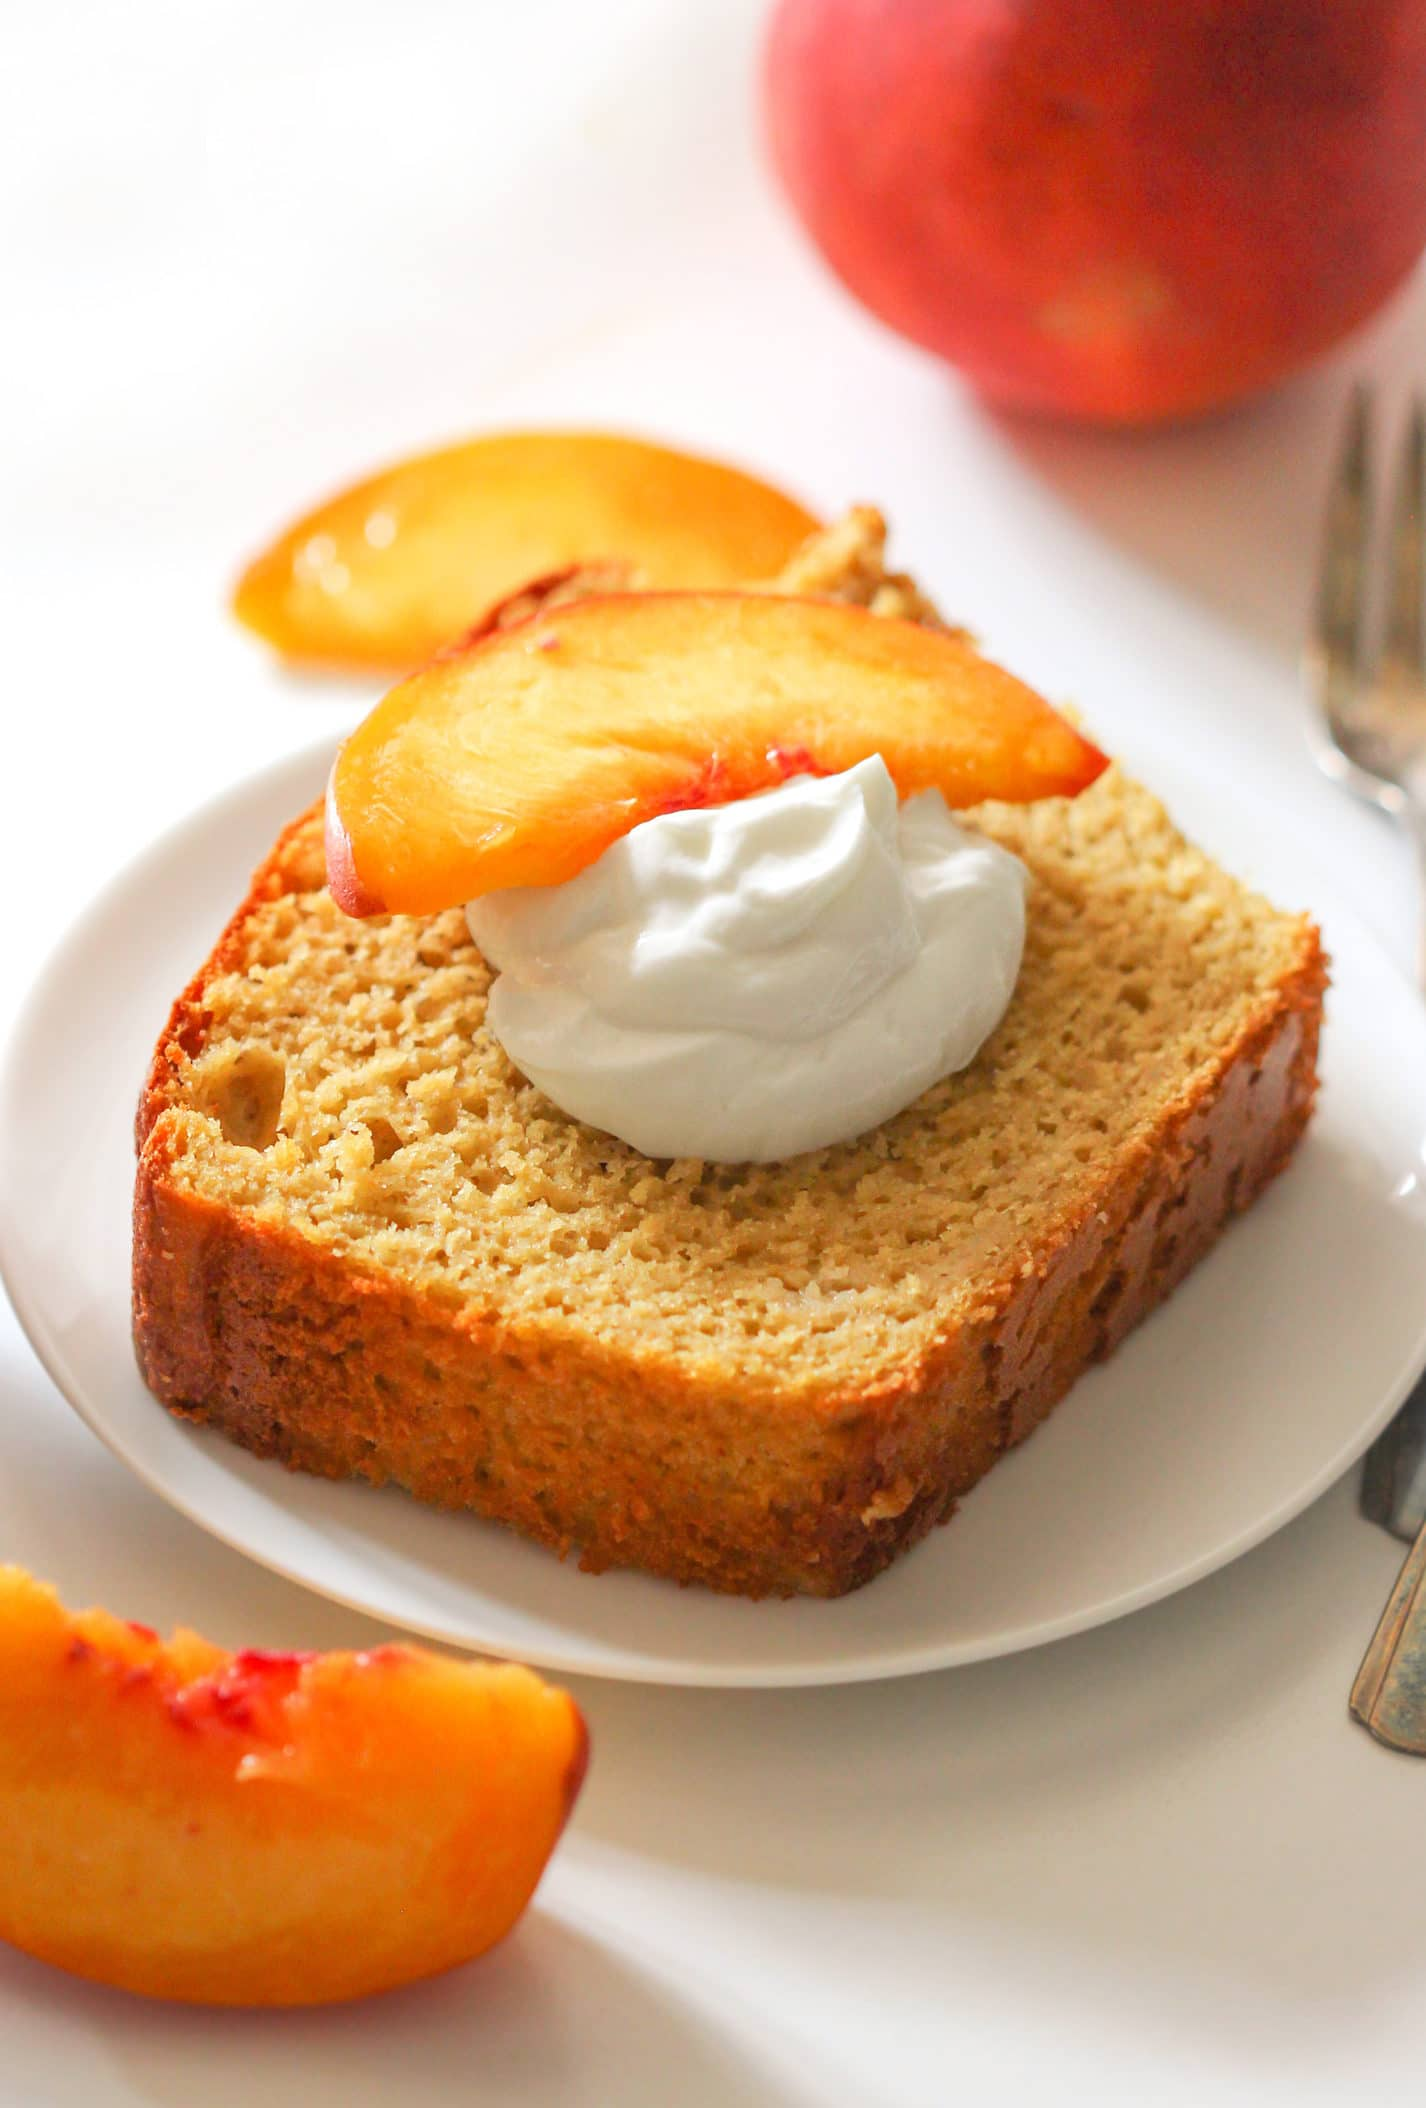 Healthy Nectarine Olive Oil Pound Cake! Yes, olive oil in a dessert, and it works! This light cake is perfectly sweet and 100% satisfying. Made with whole wheat flour, yogurt, and organic extra virgin olive oil, and none of the butter or sugar… but you'd never know it! Healthy Dessert Recipes with sugar free, low calorie, low fat, low carb, high protein, gluten free, dairy free, vegan, and raw options at the Desserts With Benefits Blog (www.DessertsWithBenefits.com)